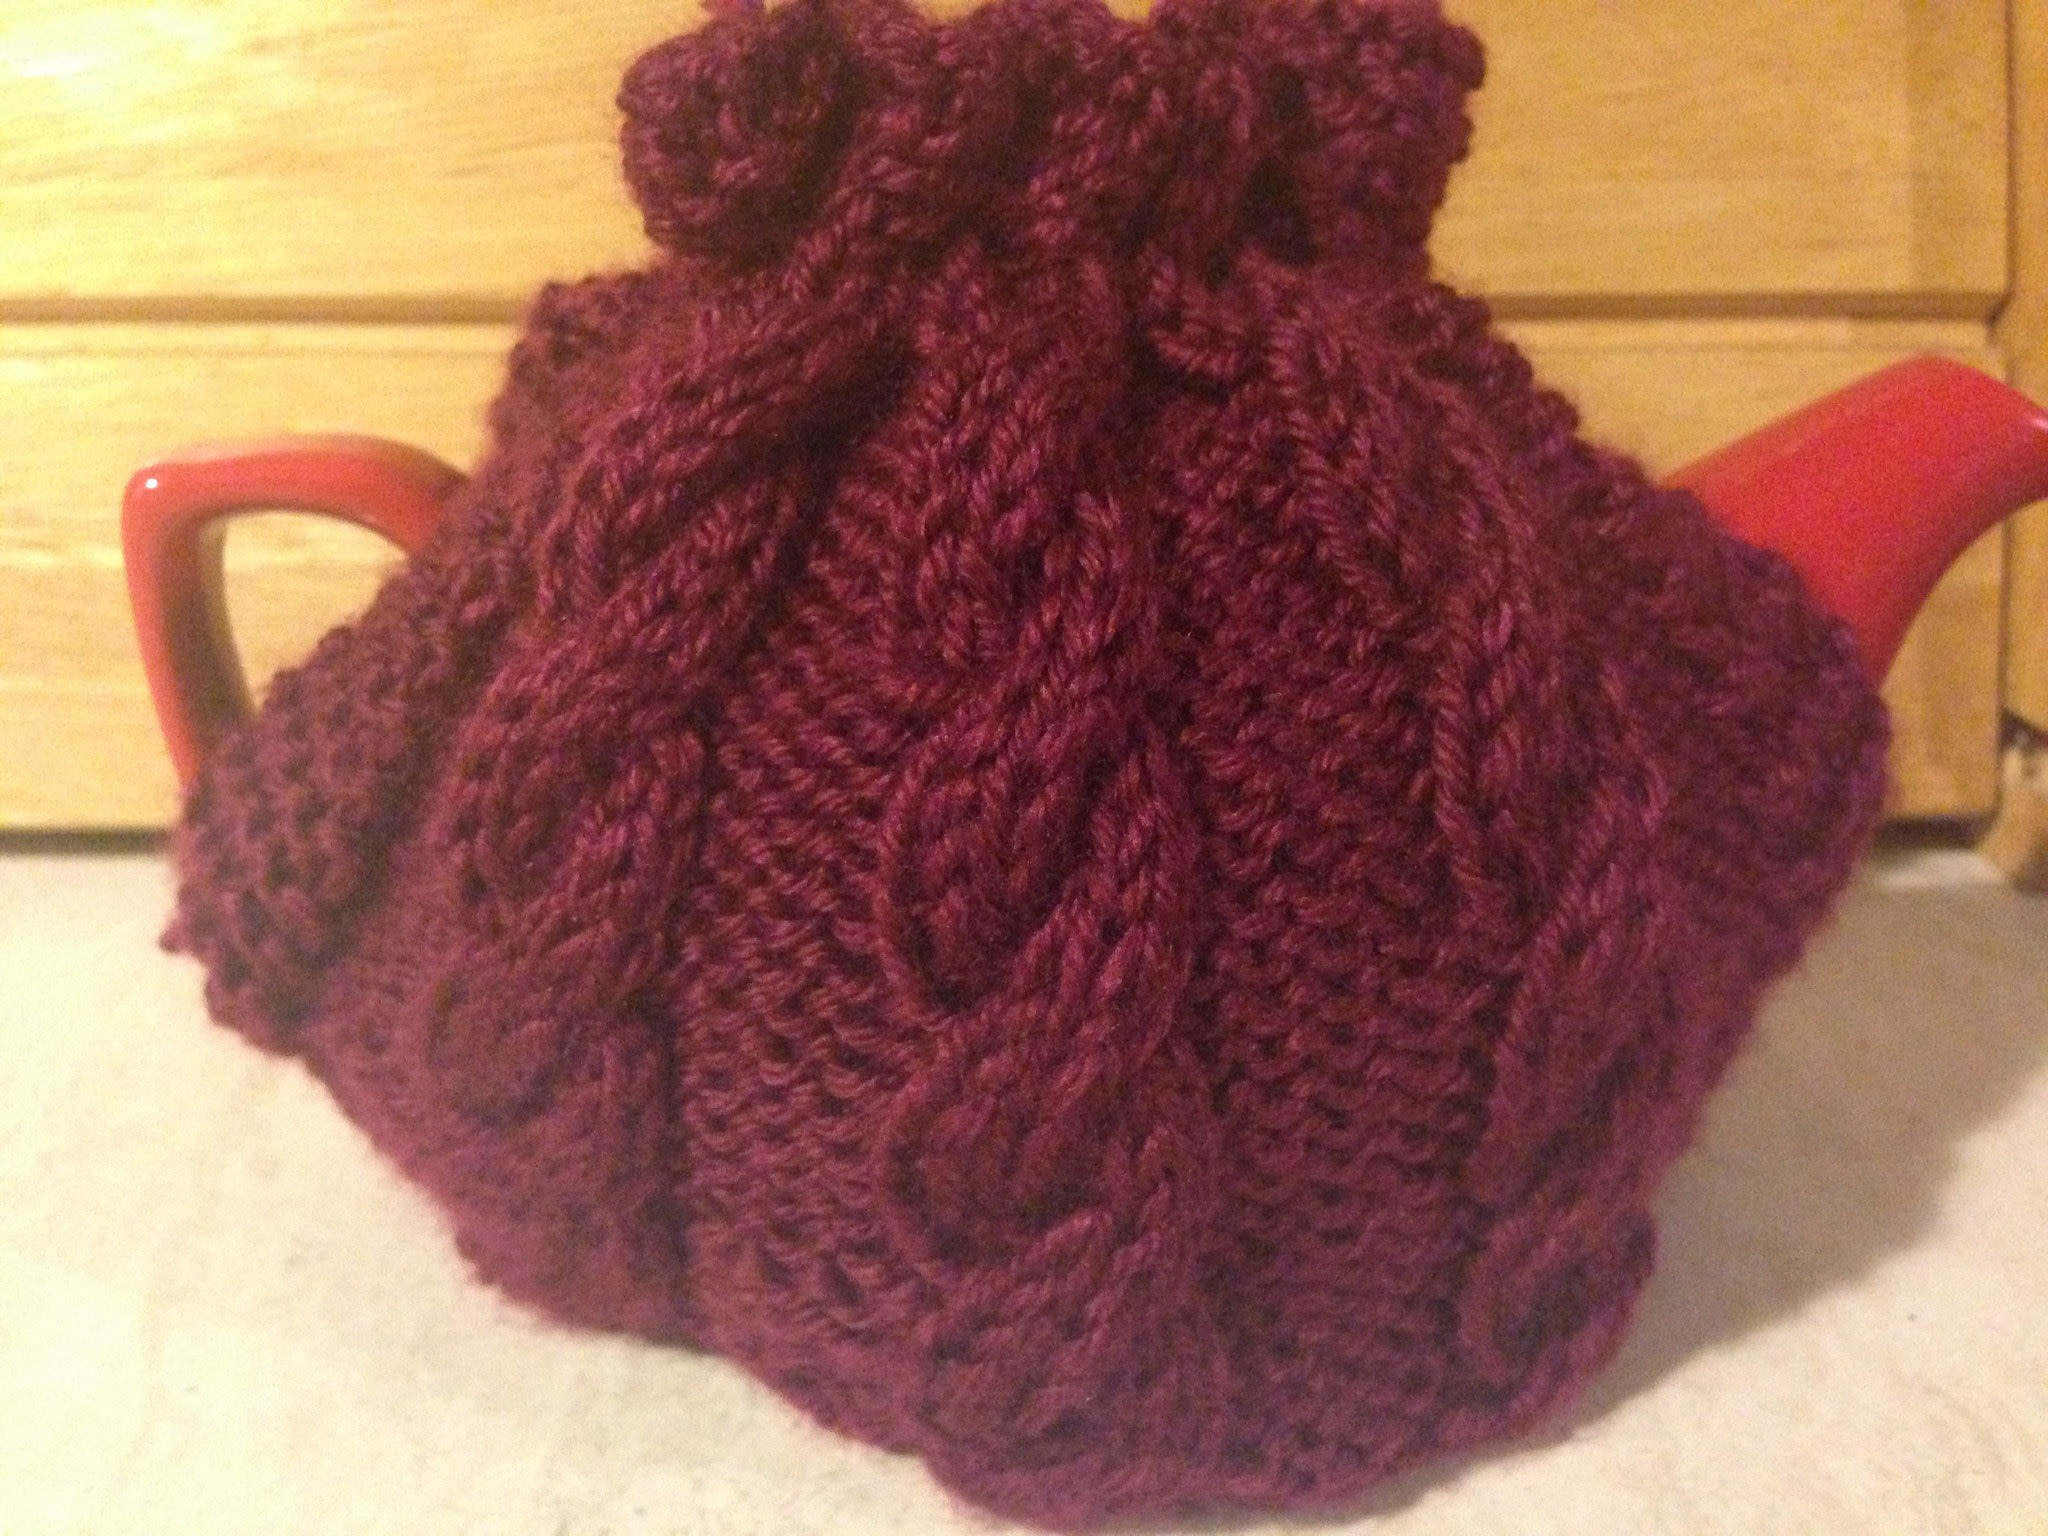 Tea Cosy Knitting Patterns Easy Cabled Tea Cosy How To Make A Tea Cozy Yarncraft On Cut Out Keep